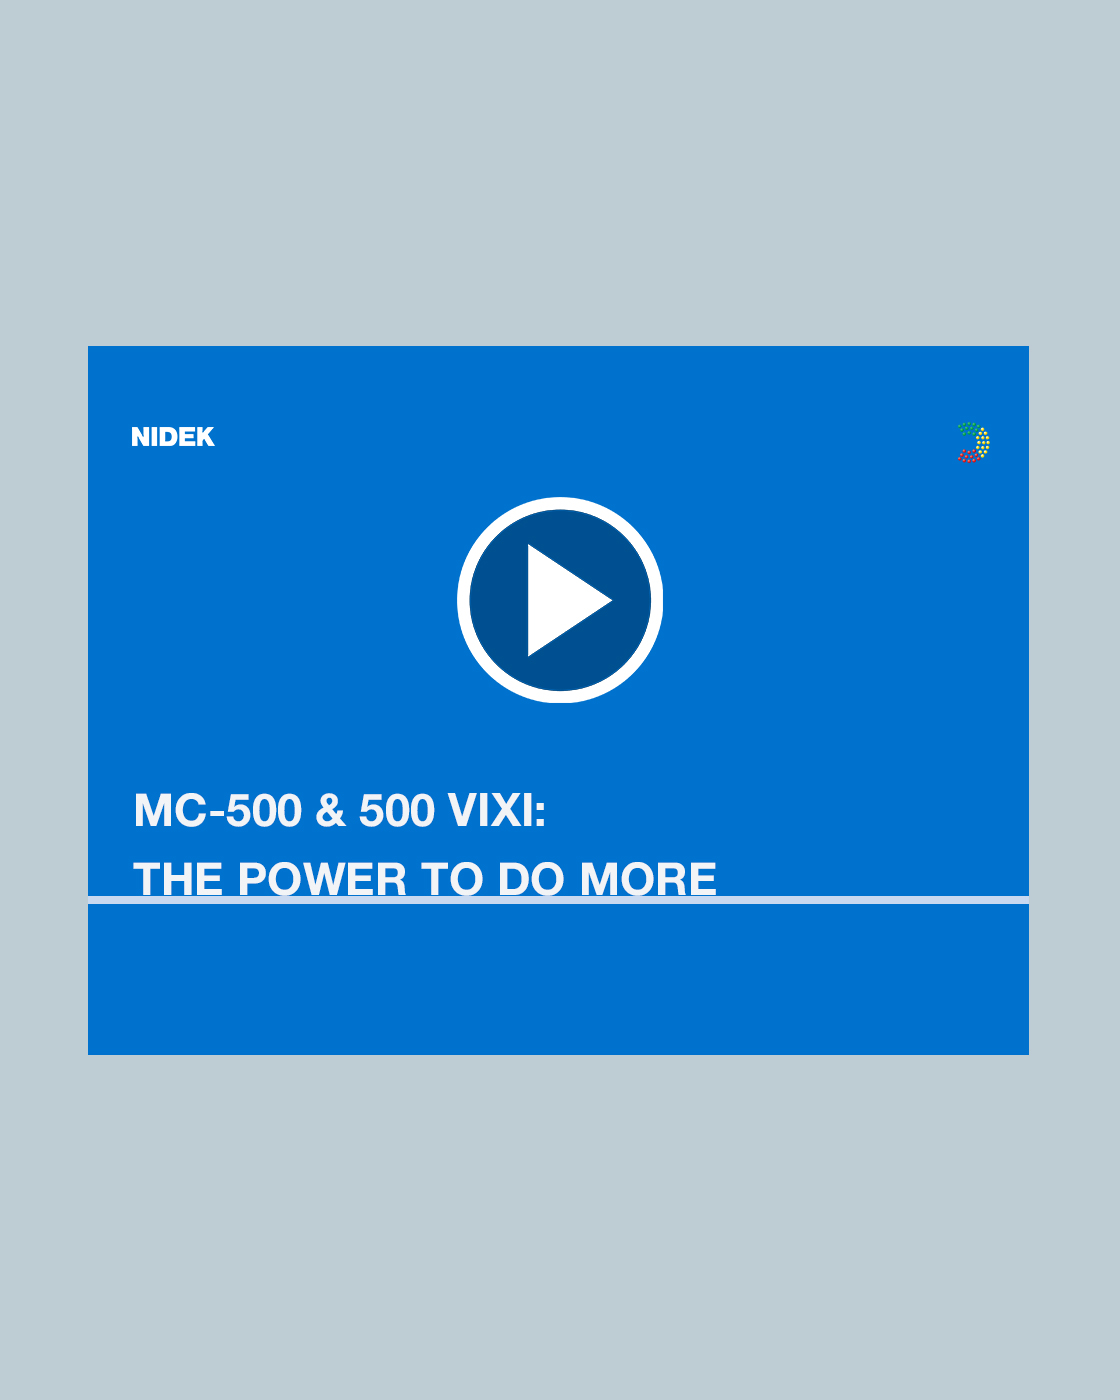 Introducing MC-500 Vixi: The Power to Do More